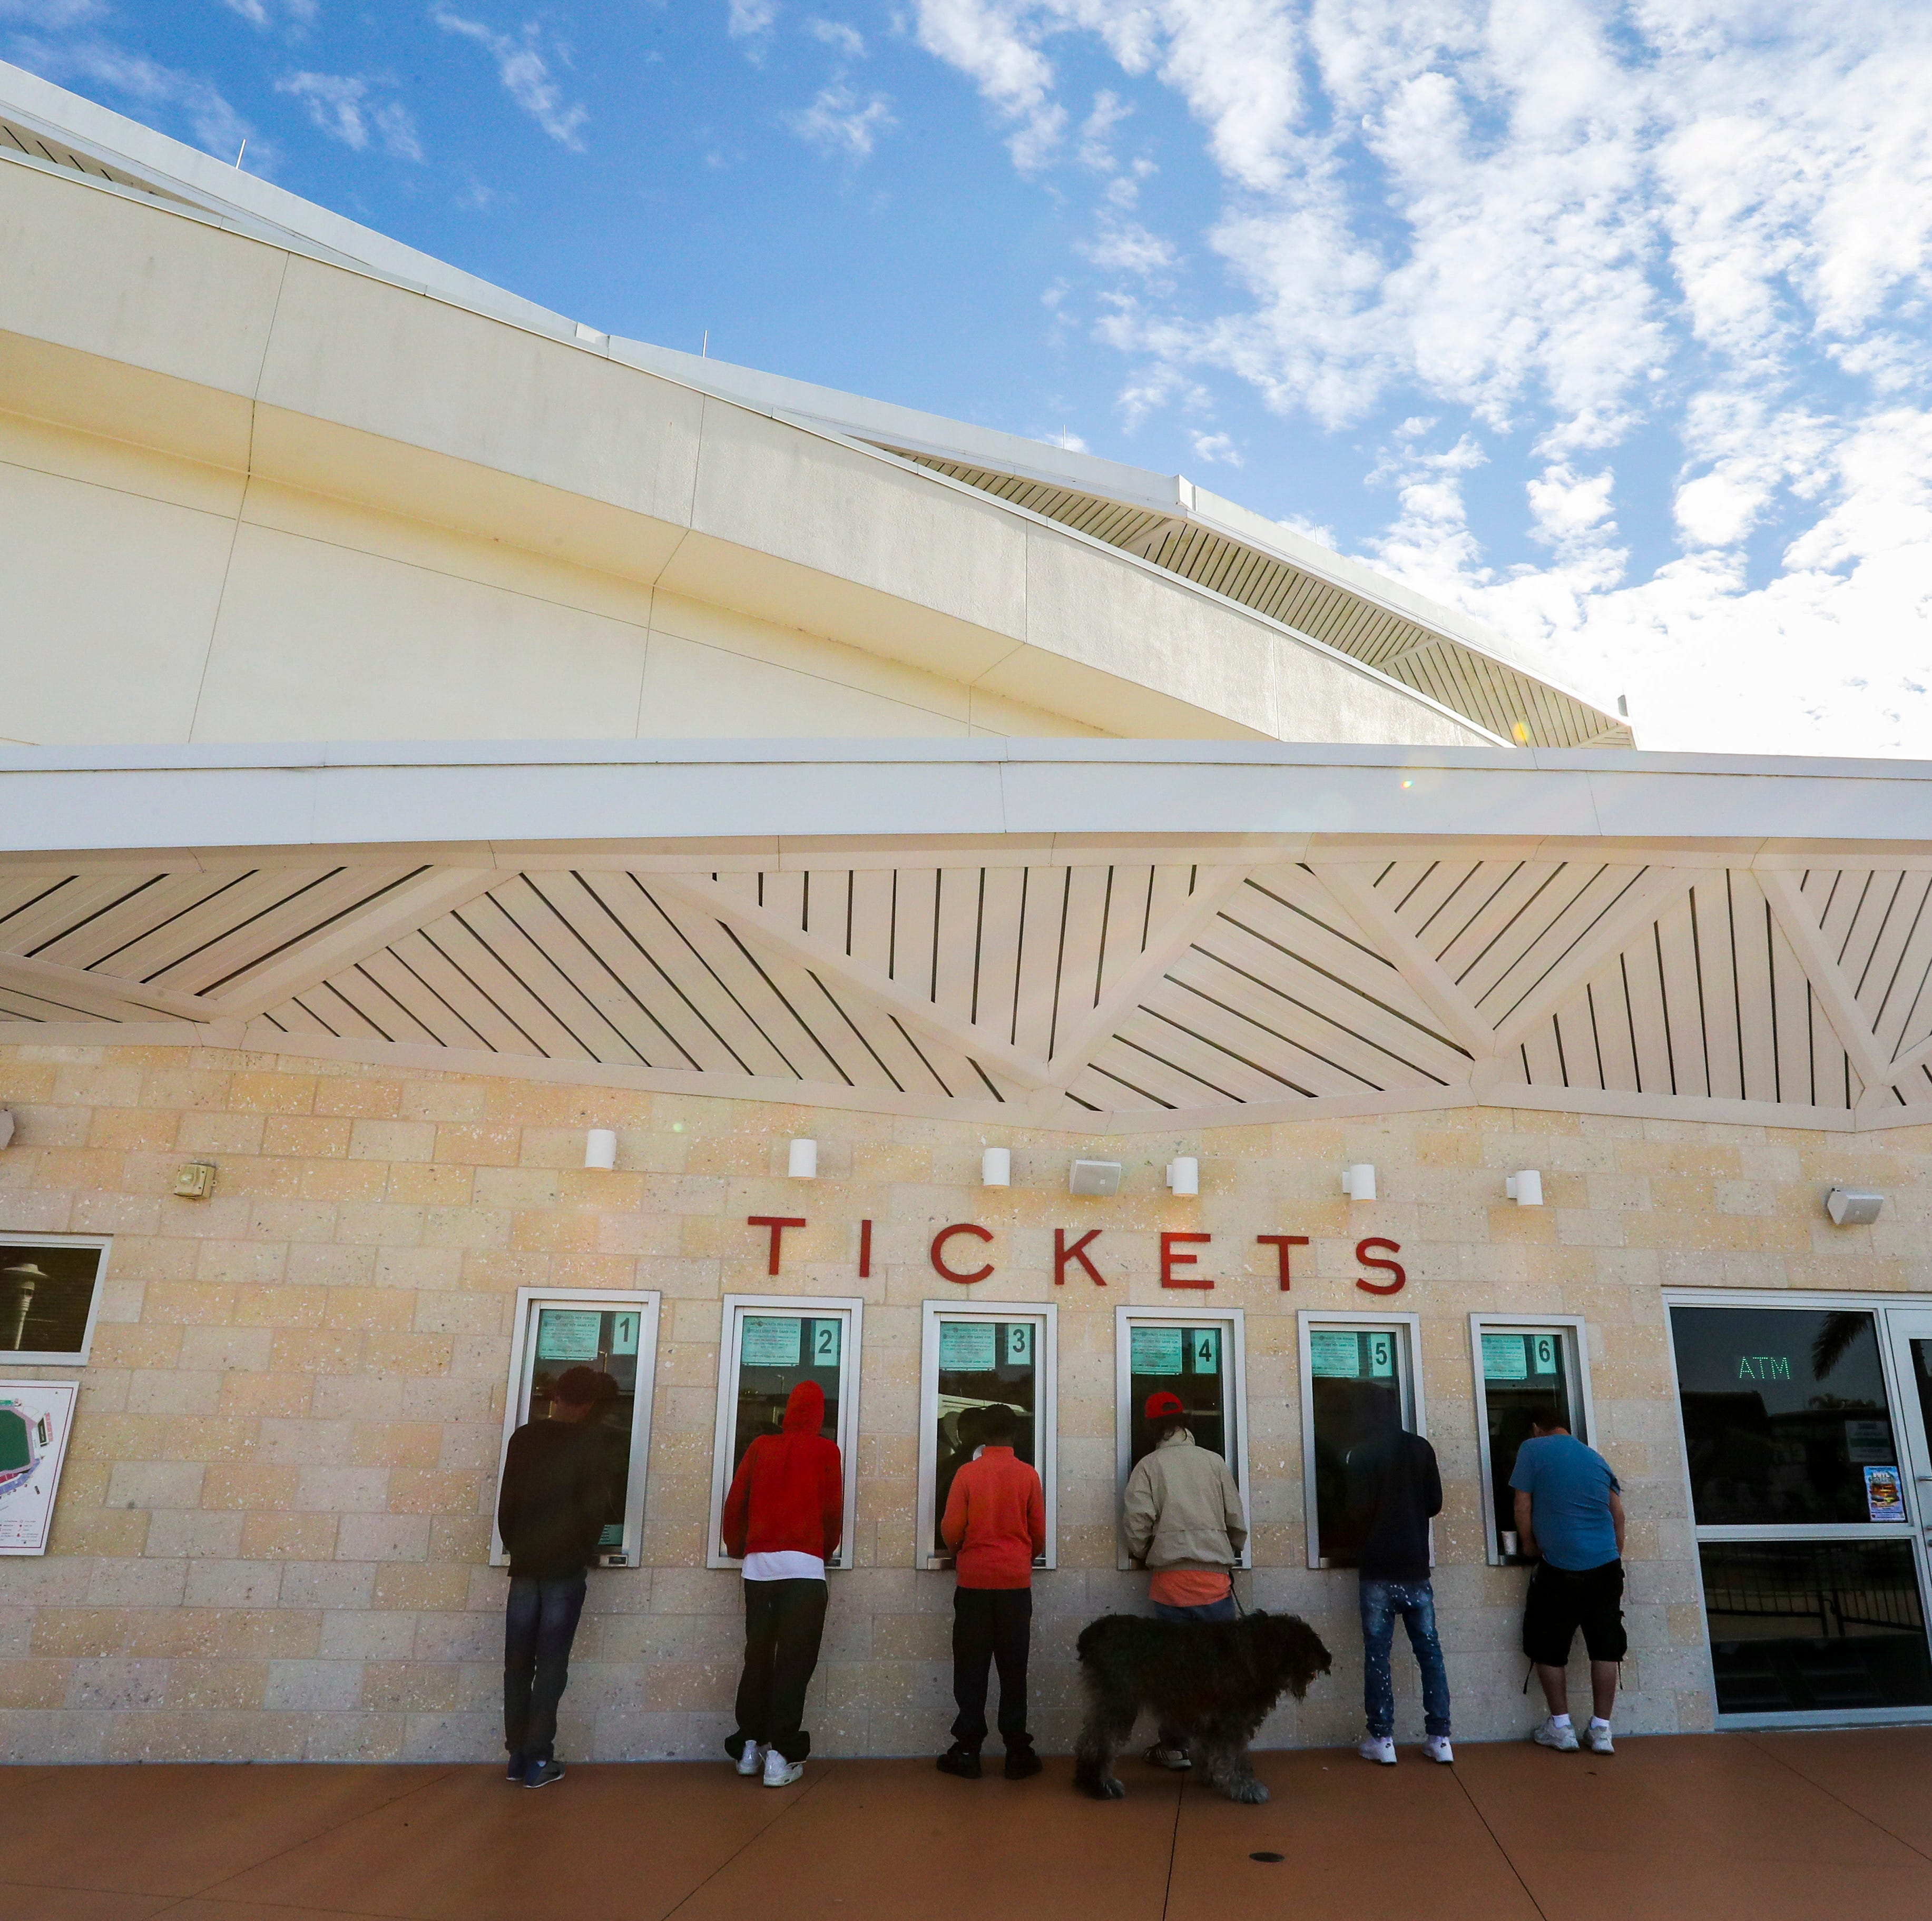 Red Sox fans not plentiful as in past but they still travel well for their spring training tix